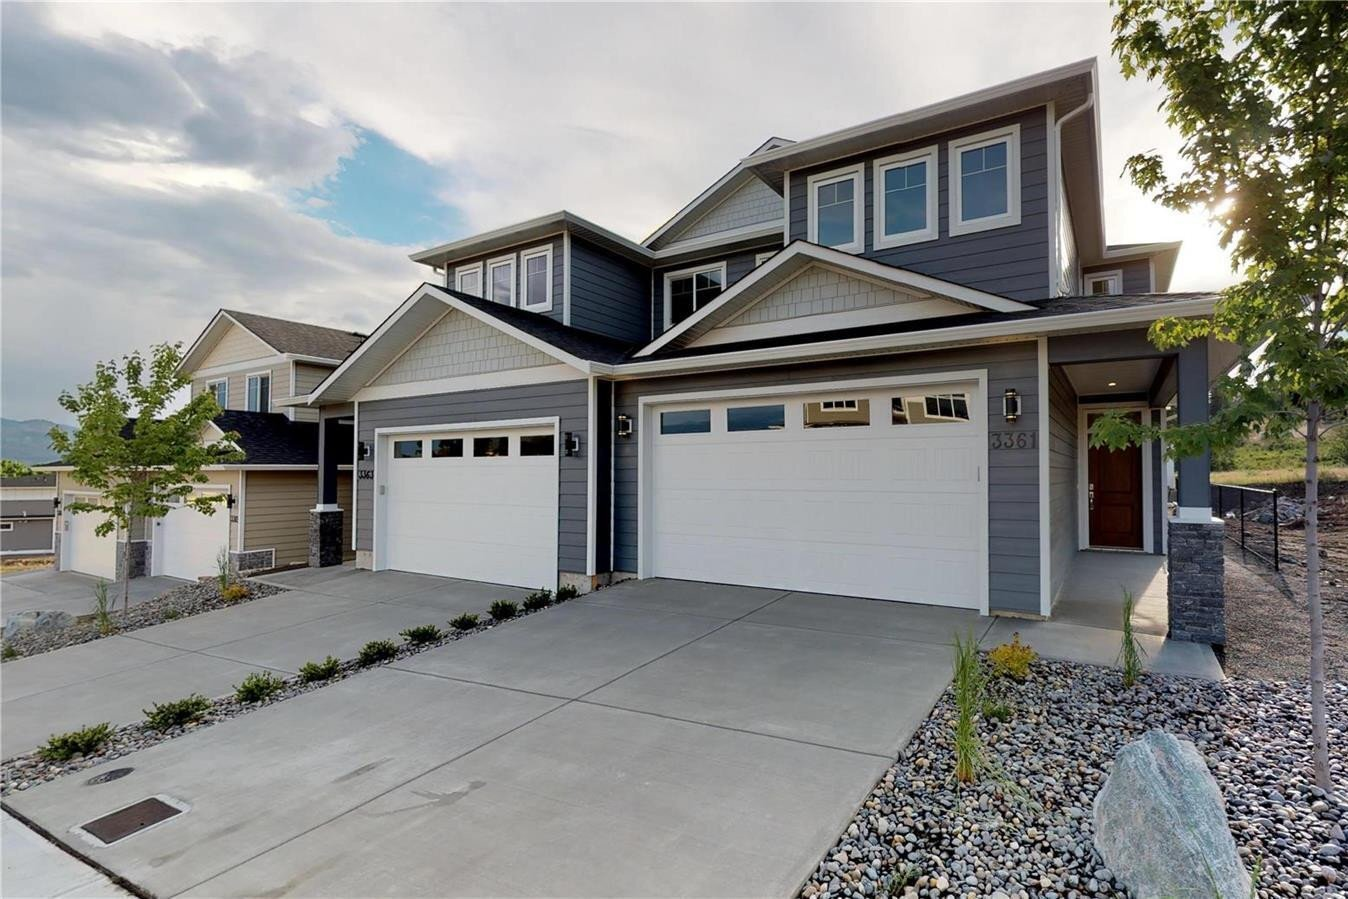 House for sale at 2355 Hawks Blvd Westbank British Columbia - MLS: 10217999